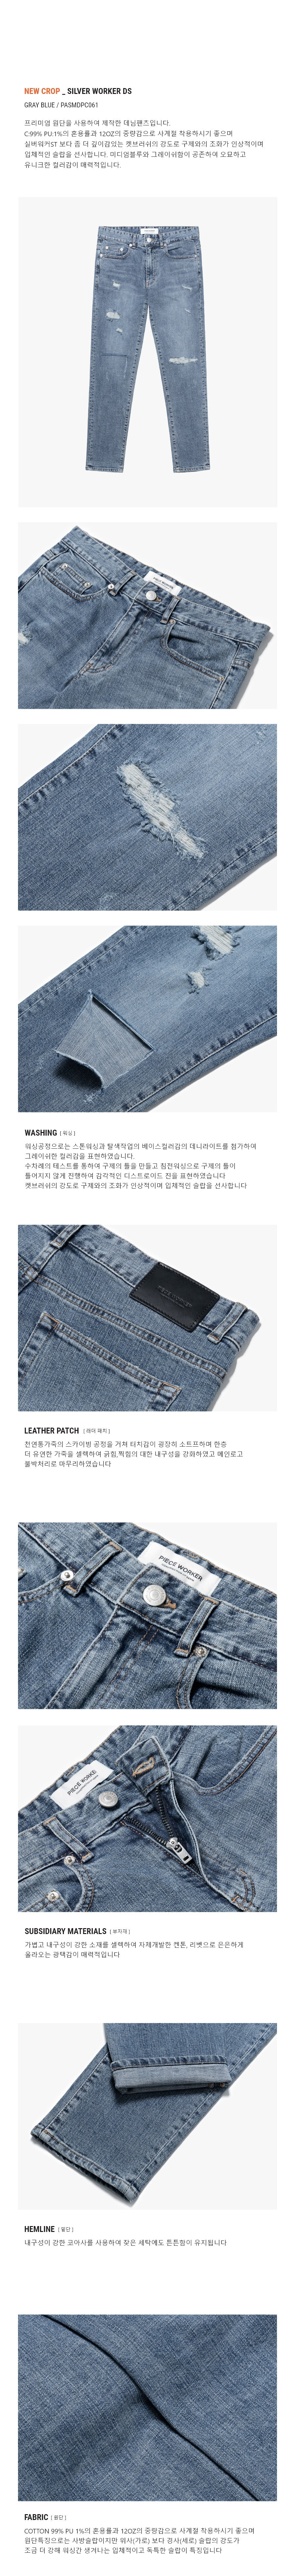 피스워커(PIECE WORKER) Silver Worker DS / New Crop